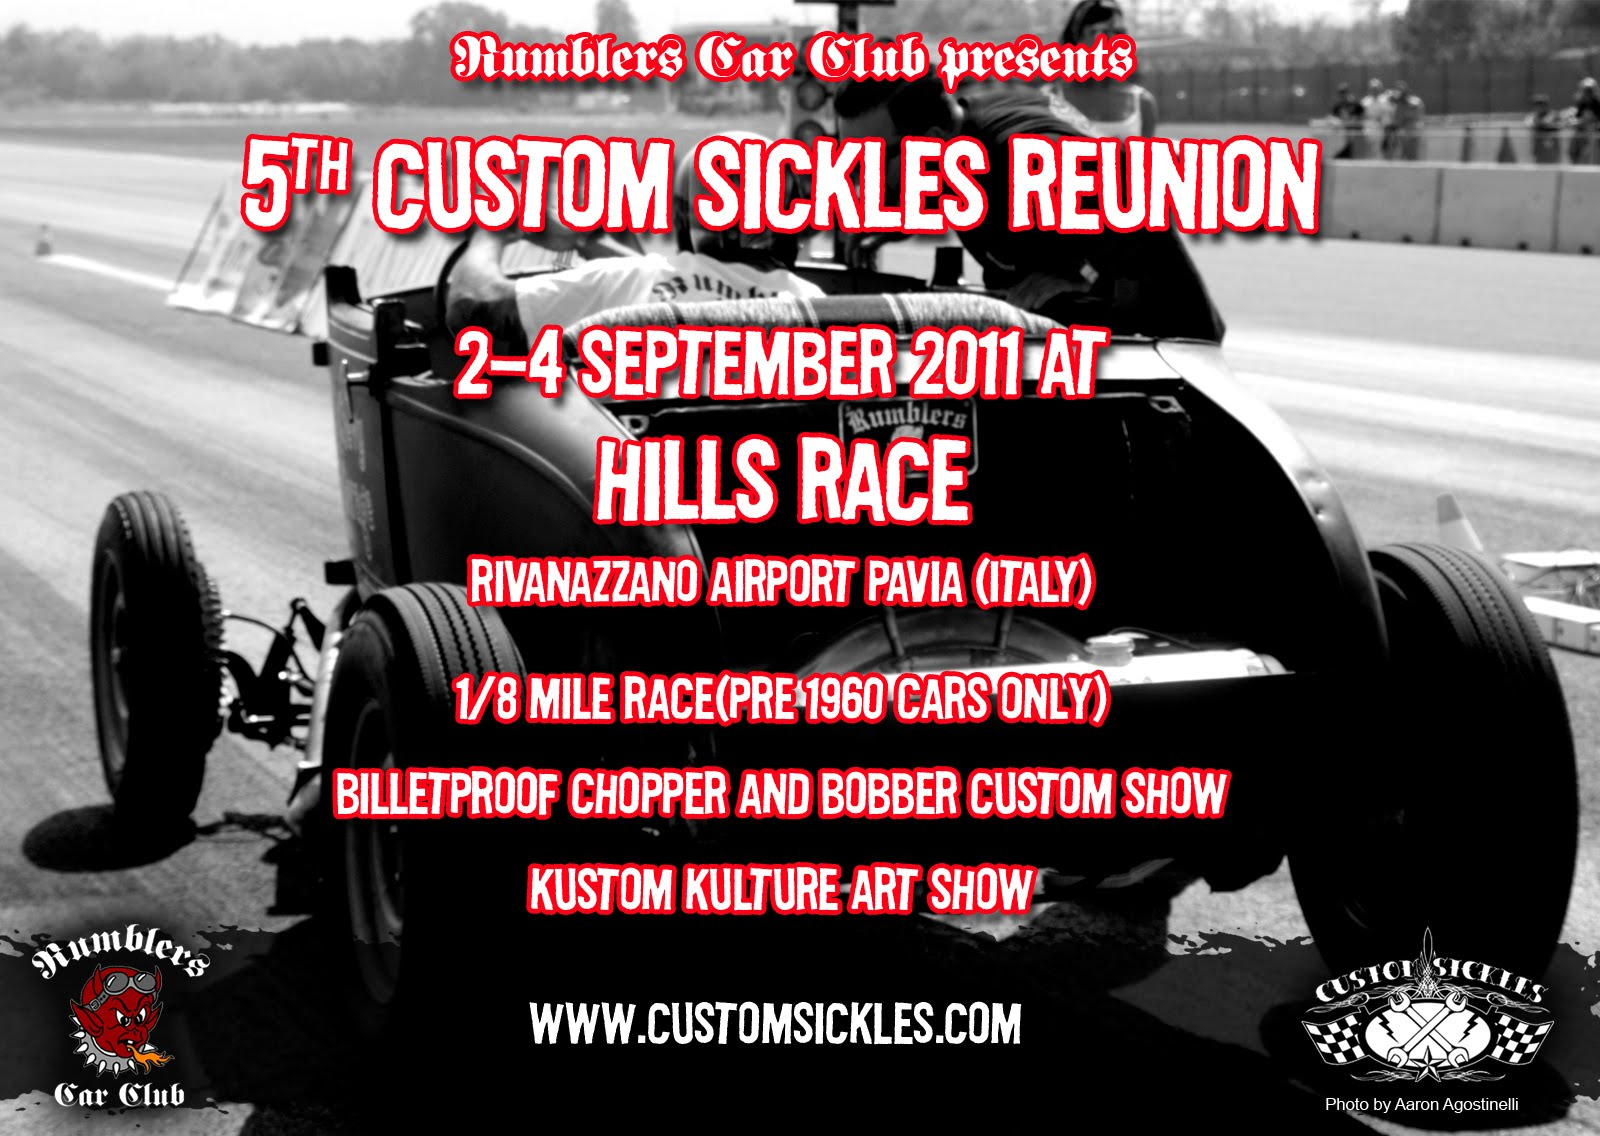 HILLS RACE 5th Custom Sickles Reunion